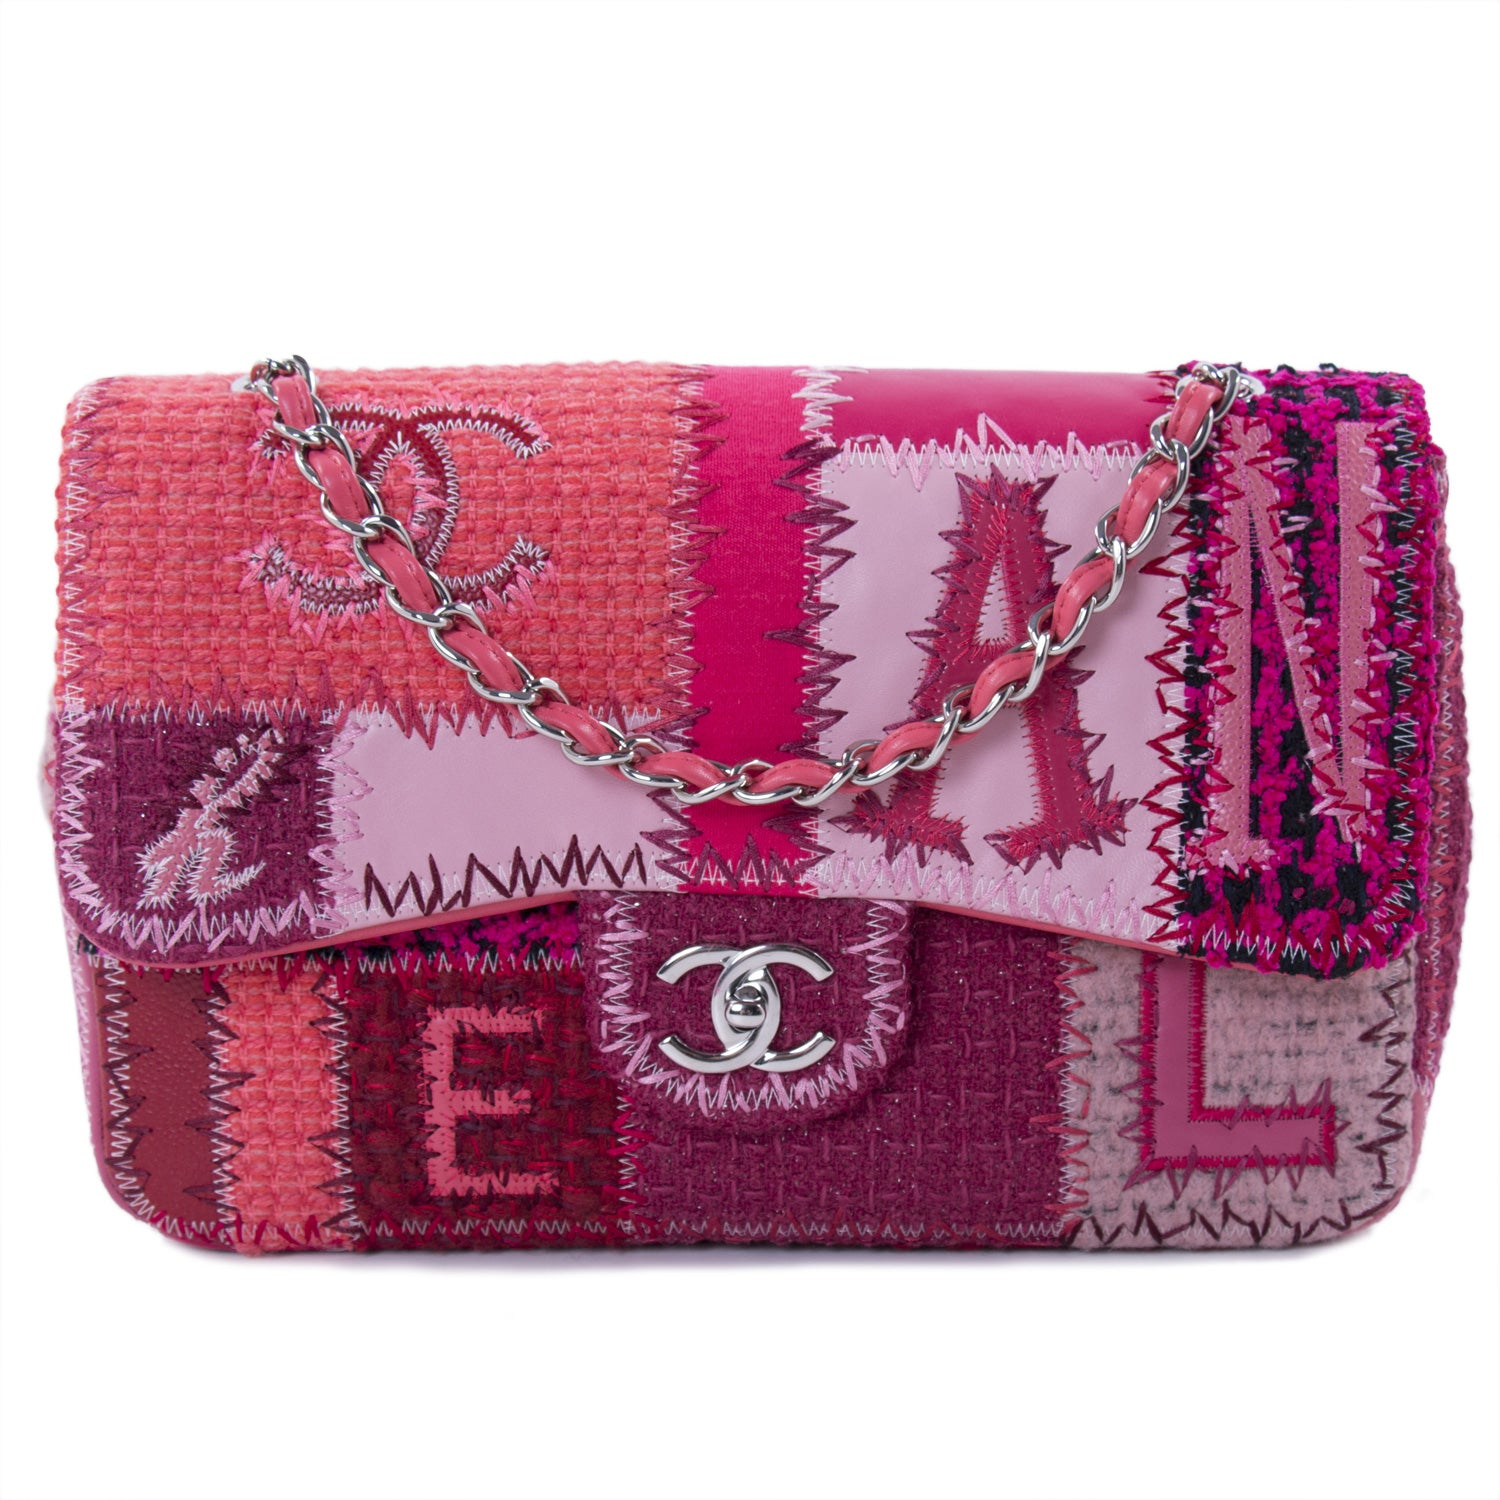 f1ae724efd0b Shop chanel at revogue